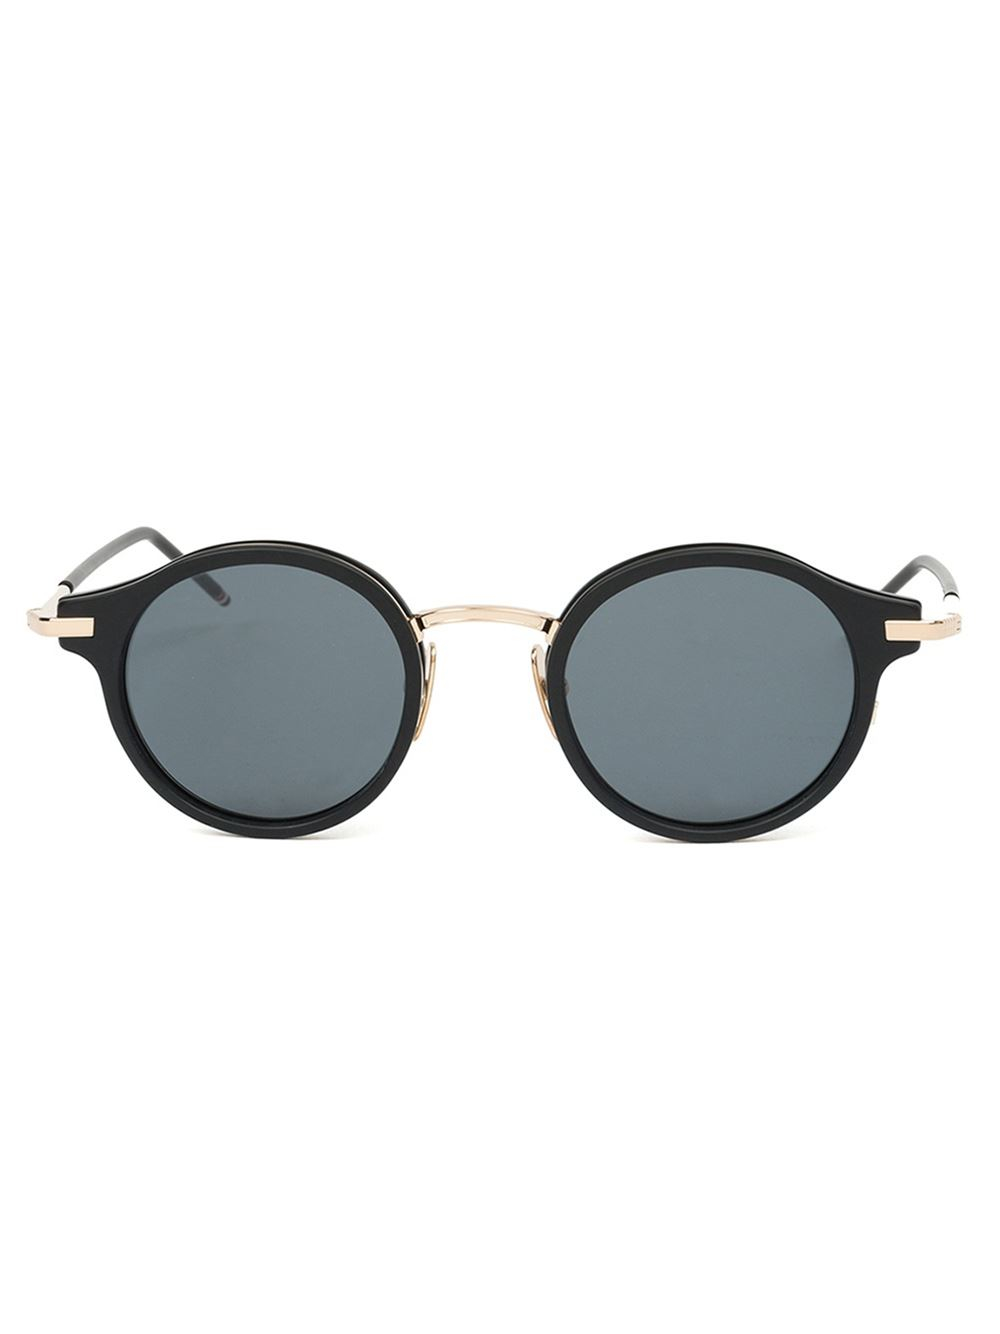 Round Gold Frame Sunglasses By Thom Browne : Thom browne Round Frame Sunglasses in Black for Men Lyst